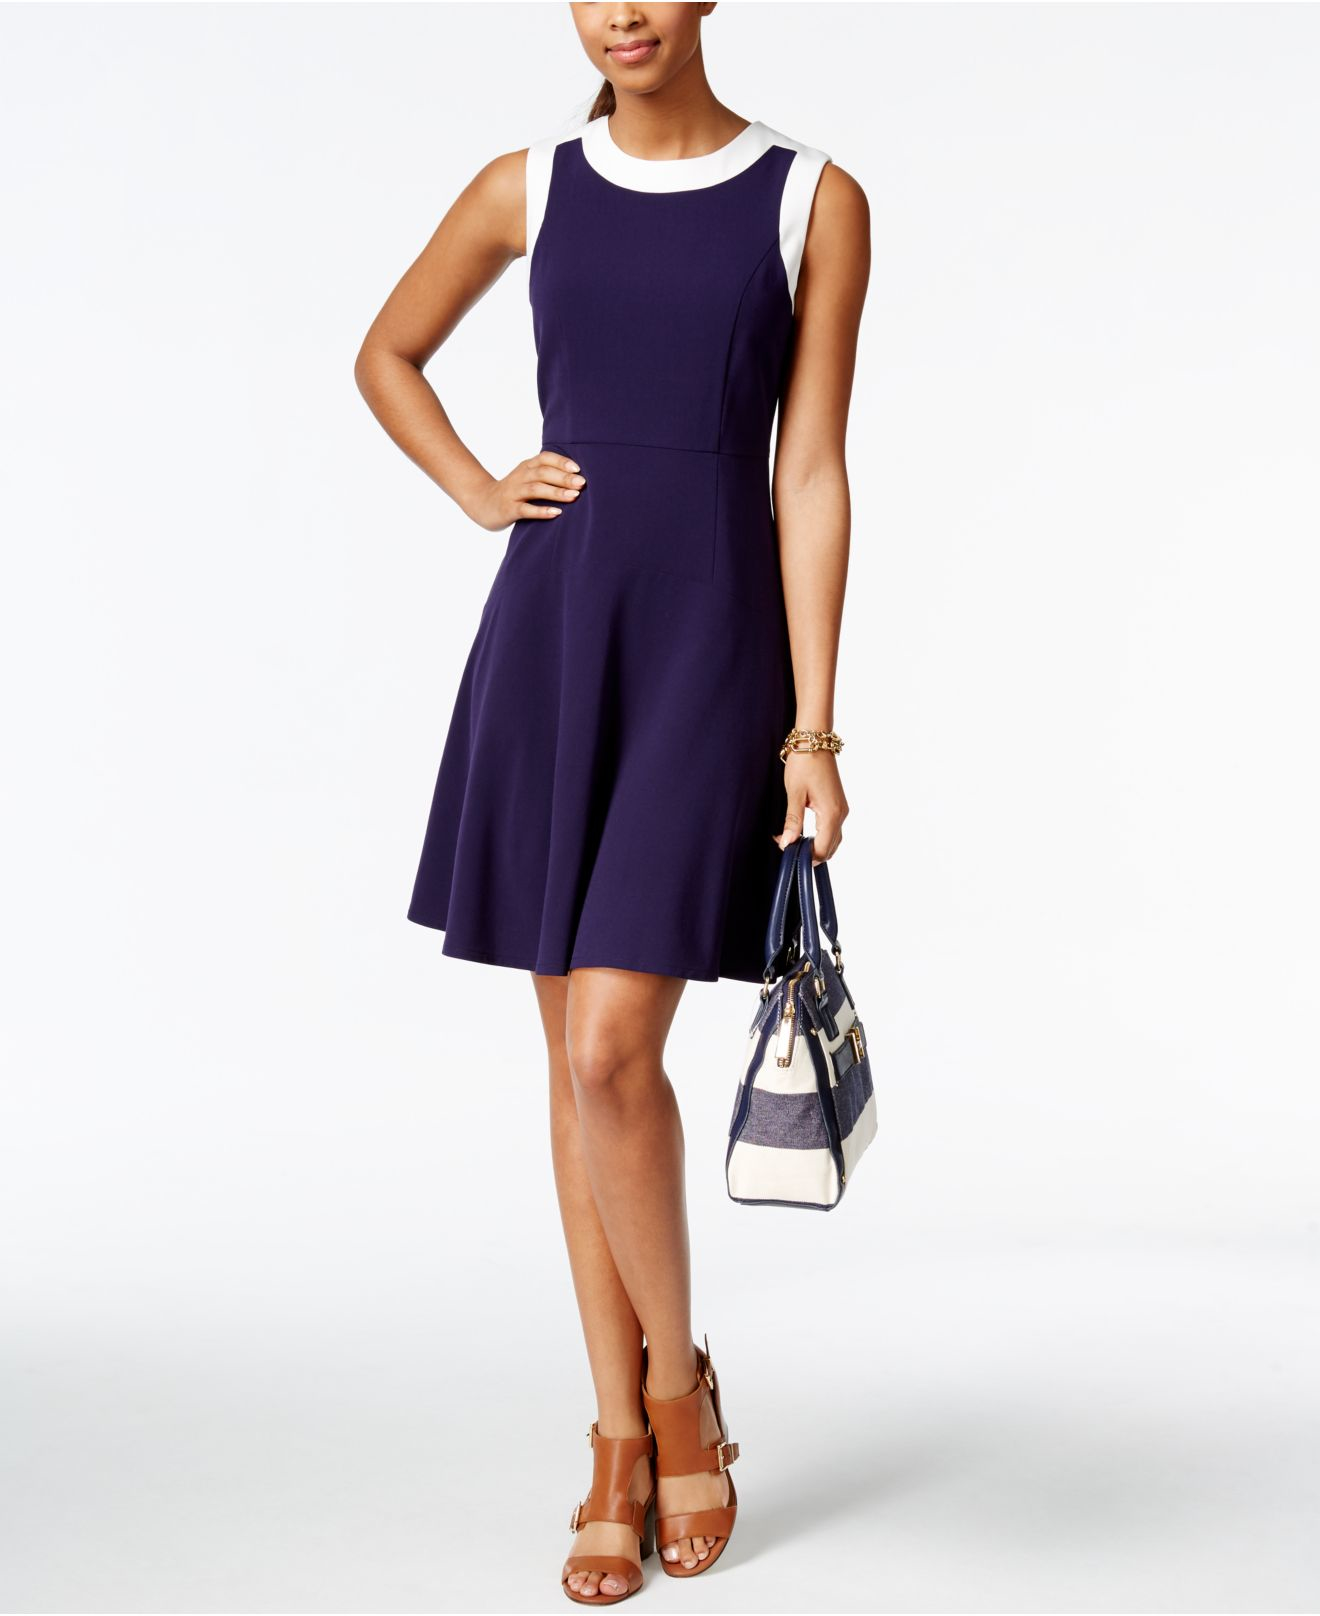 Macys Navy Blue Dresses: Tommy Hilfiger Colorblocked Fit & Flare Dress In Blue